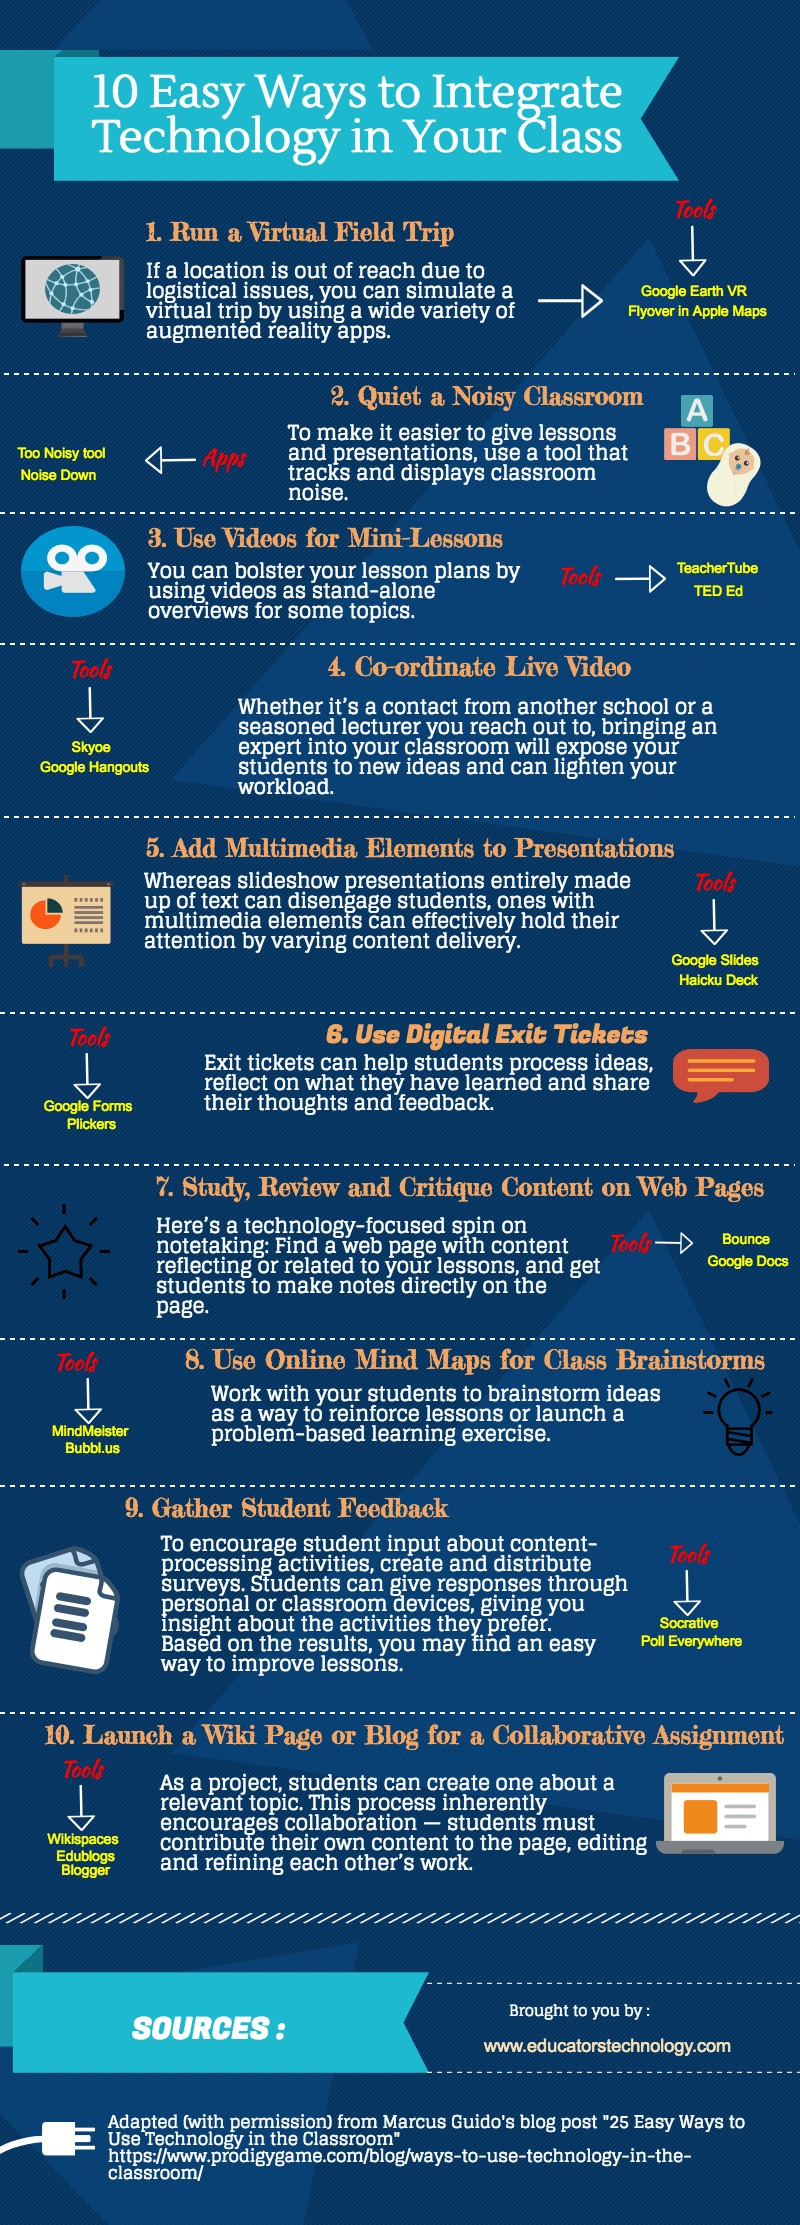 10 Easy Ways To Integrate Technology In Your Class